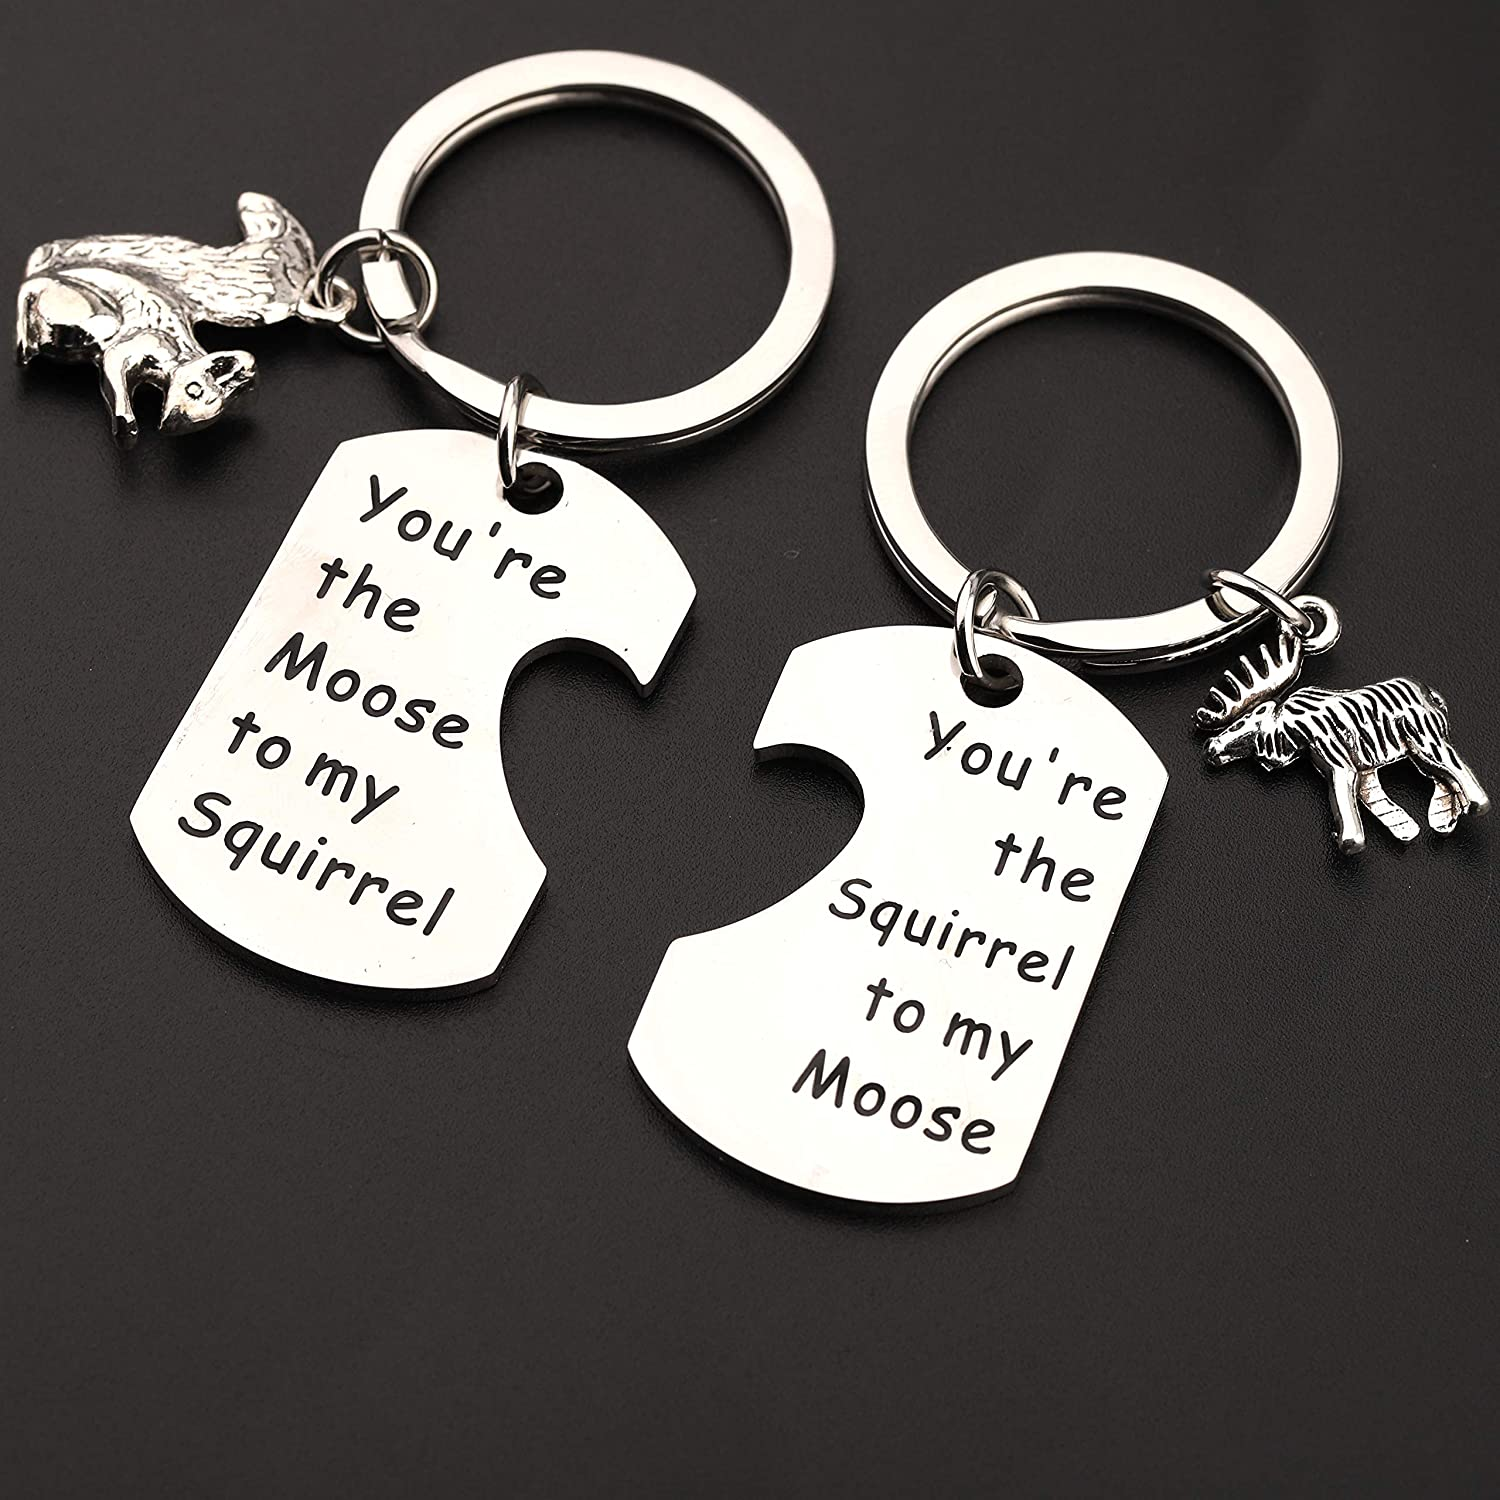 Best Friend Gift Friendship Gift Moose and Squirrel Keychain Youre the Moose to my Squirrel Sam and Dean Best Friend Keychain Set SPN Fan Gift